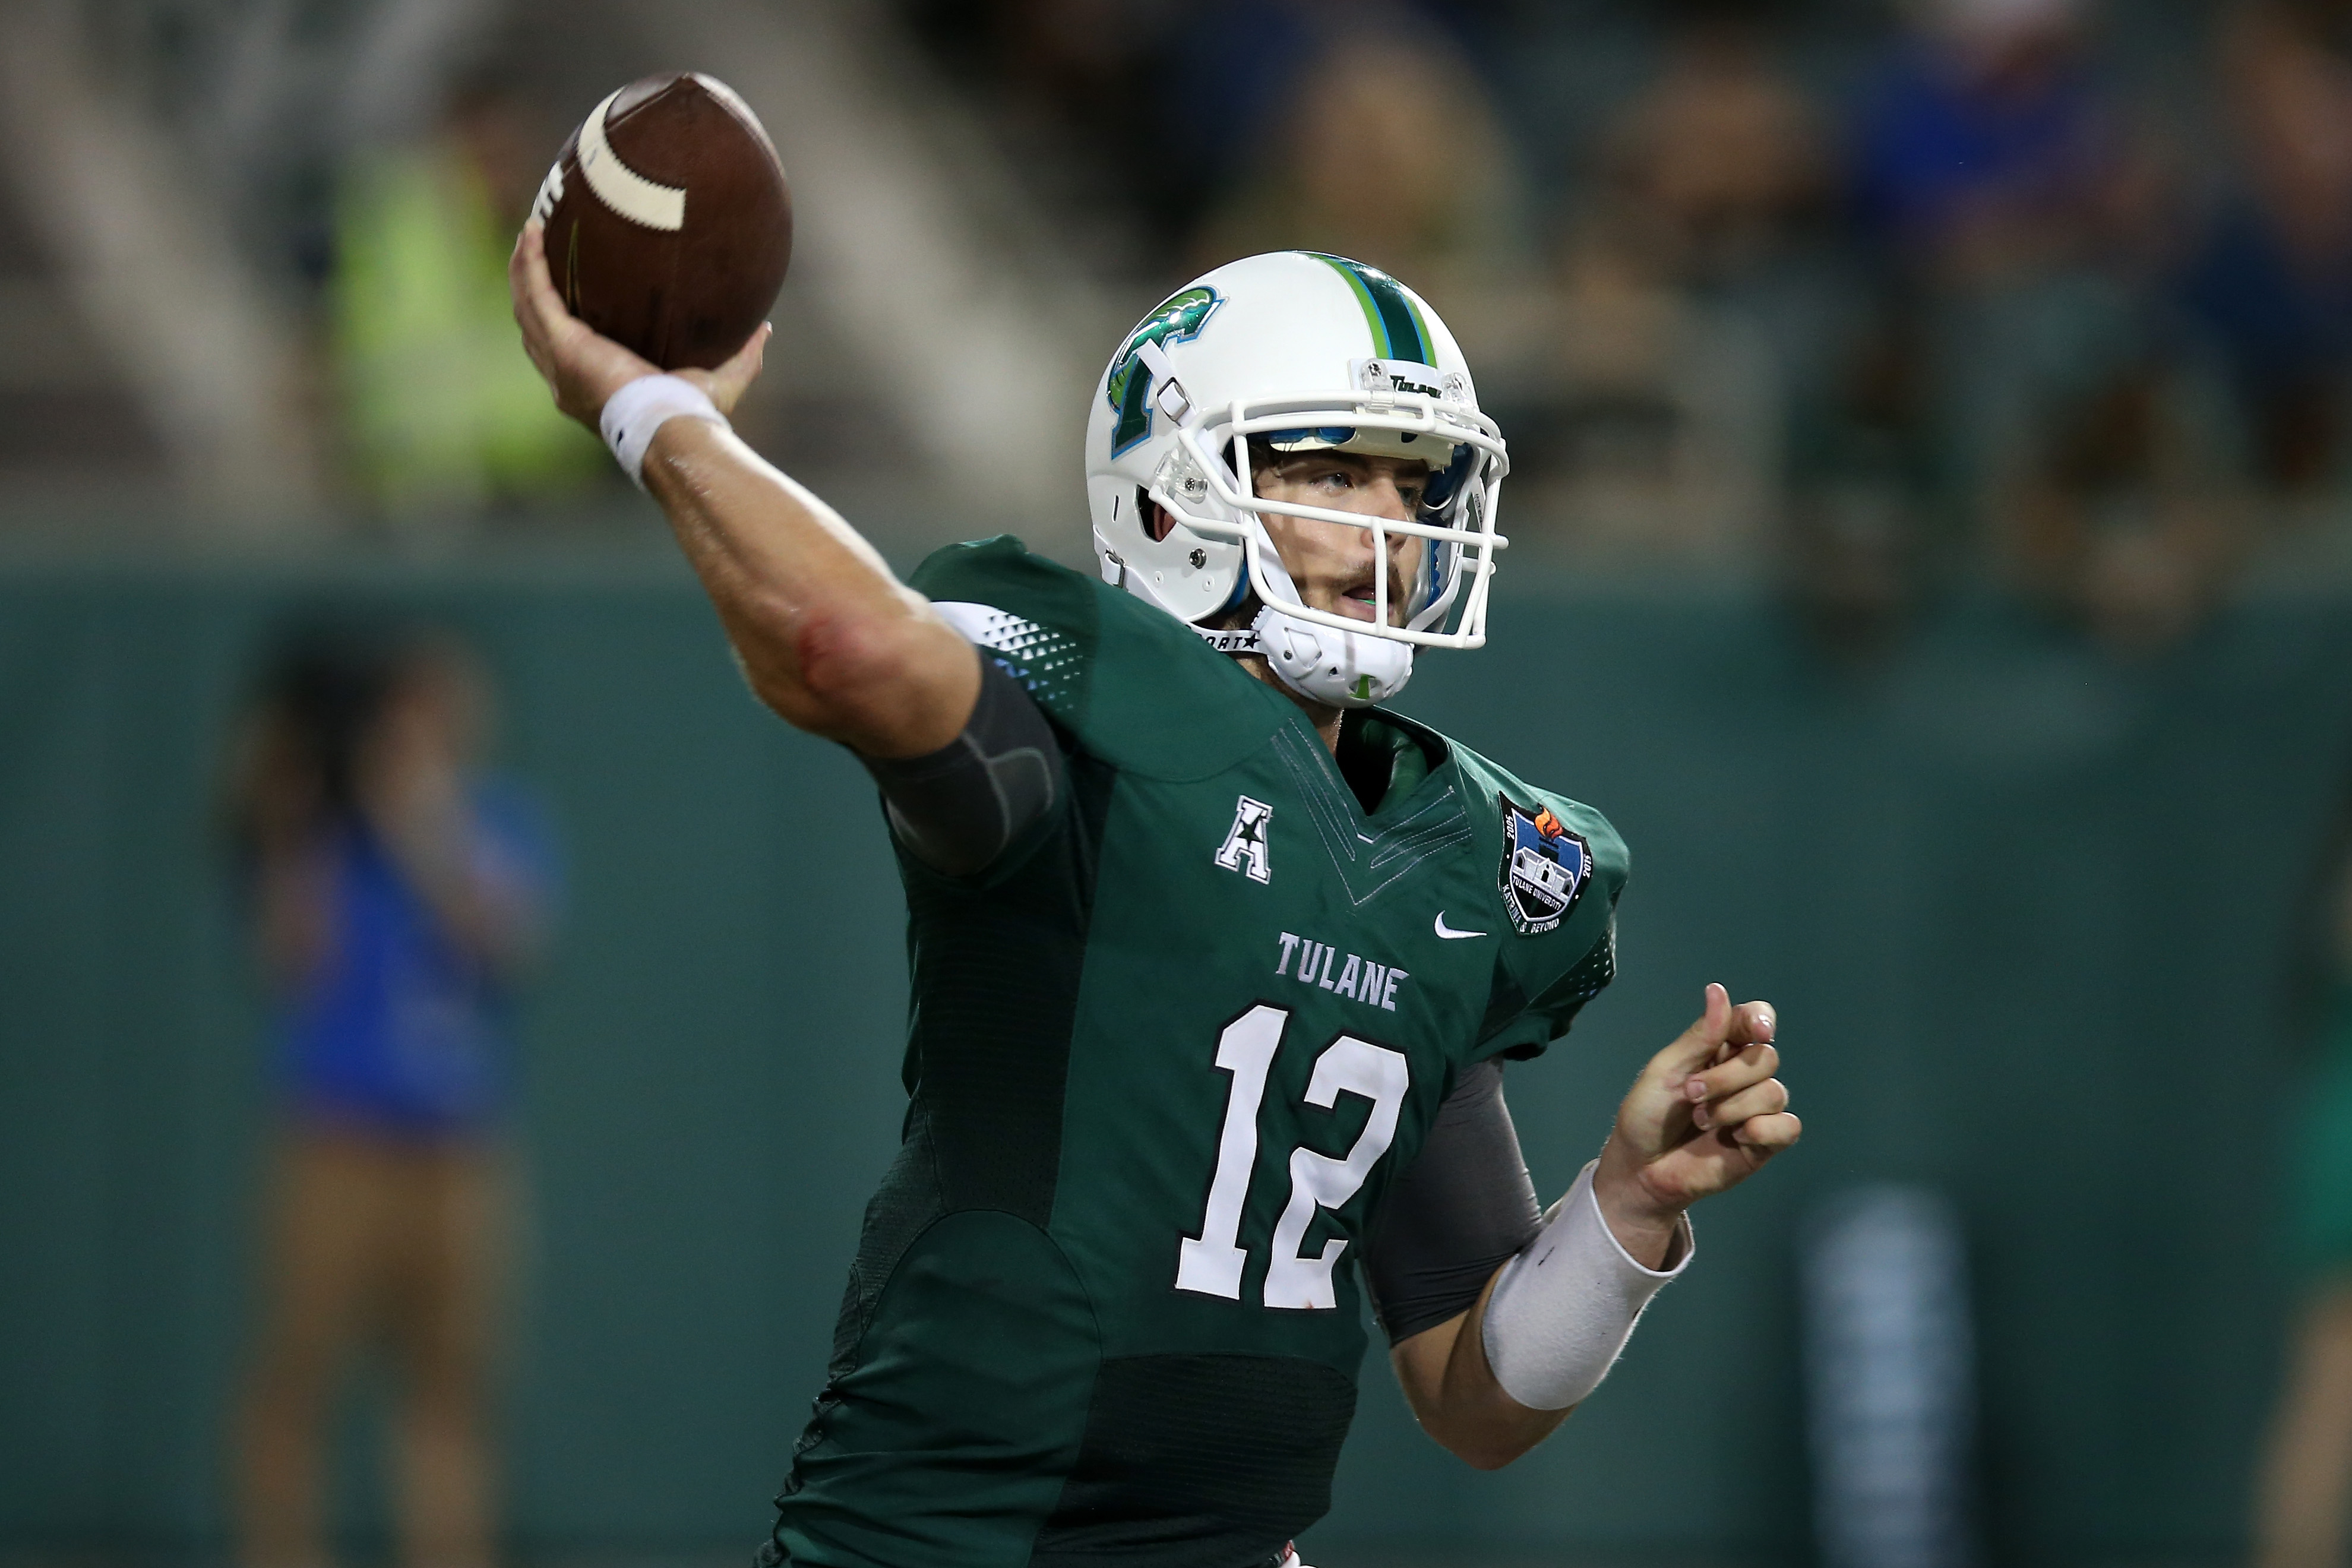 NEW ORLEANS, LA - SEPTEMBER 03: Tanner Lee #12 of the Tulane Green Wave throws under pressure from Duke Blue Devils at Yulman Stadium on September 3, 2015 in New Orleans, Louisiana. (Photo by Chris Graythen/Getty Images)